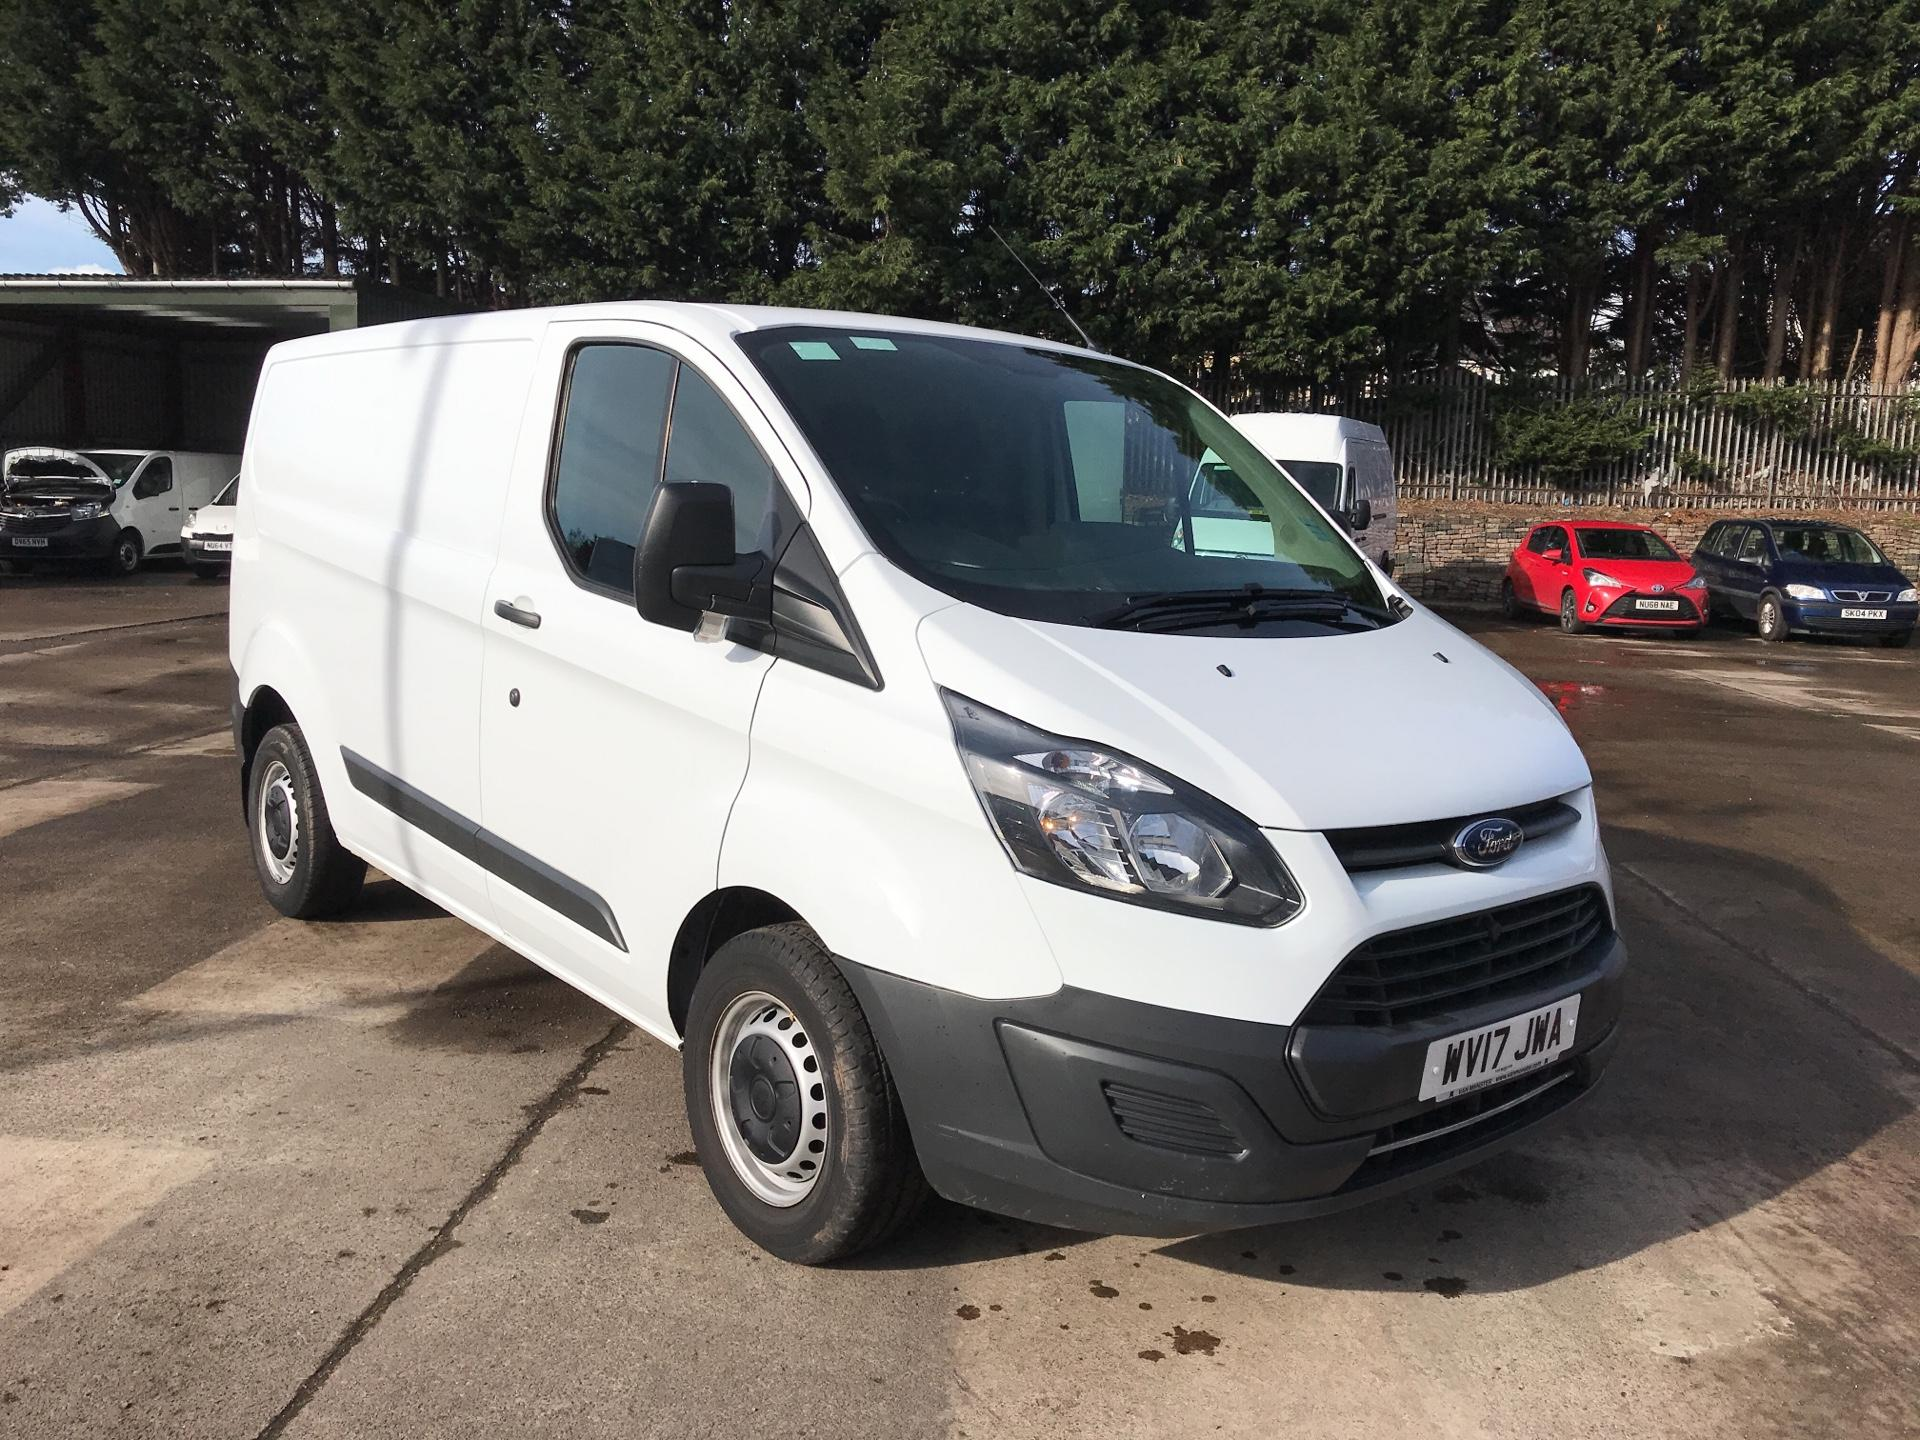 2017 Ford Transit Custom 290 L1 DIESEL FWD 2.0 TDCI 105PS LOW ROOF VAN EURO 6 (WV17JWA)